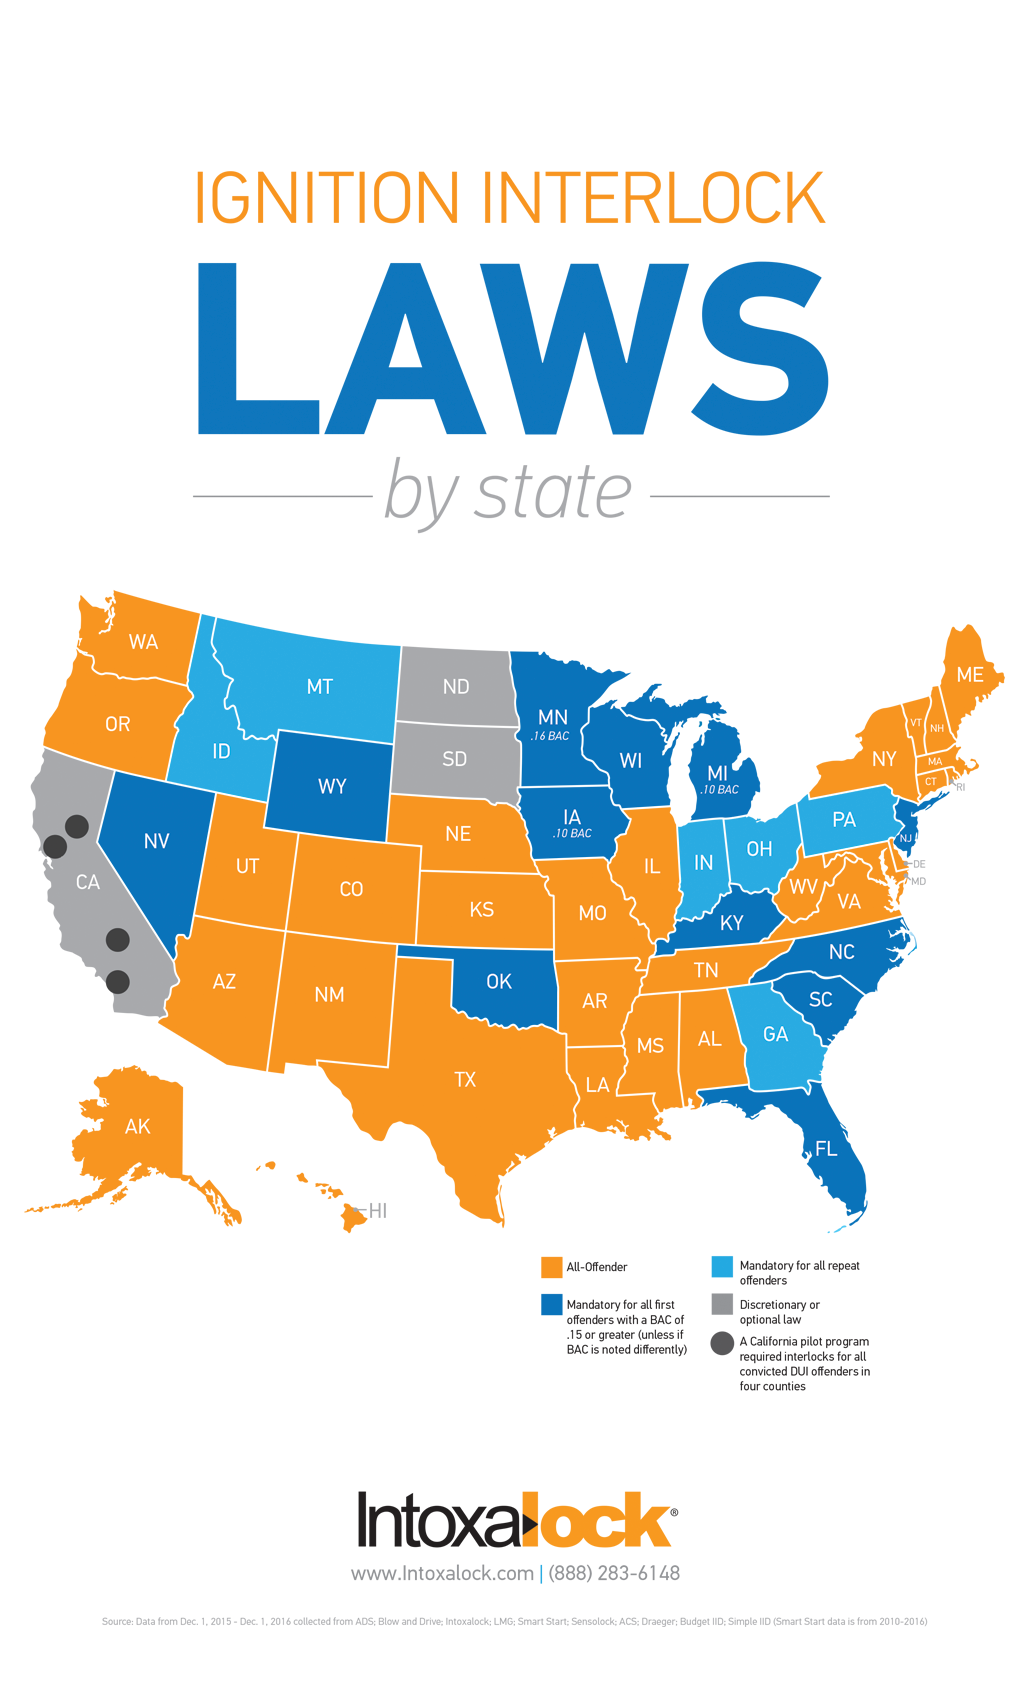 Ignition interlock laws by state